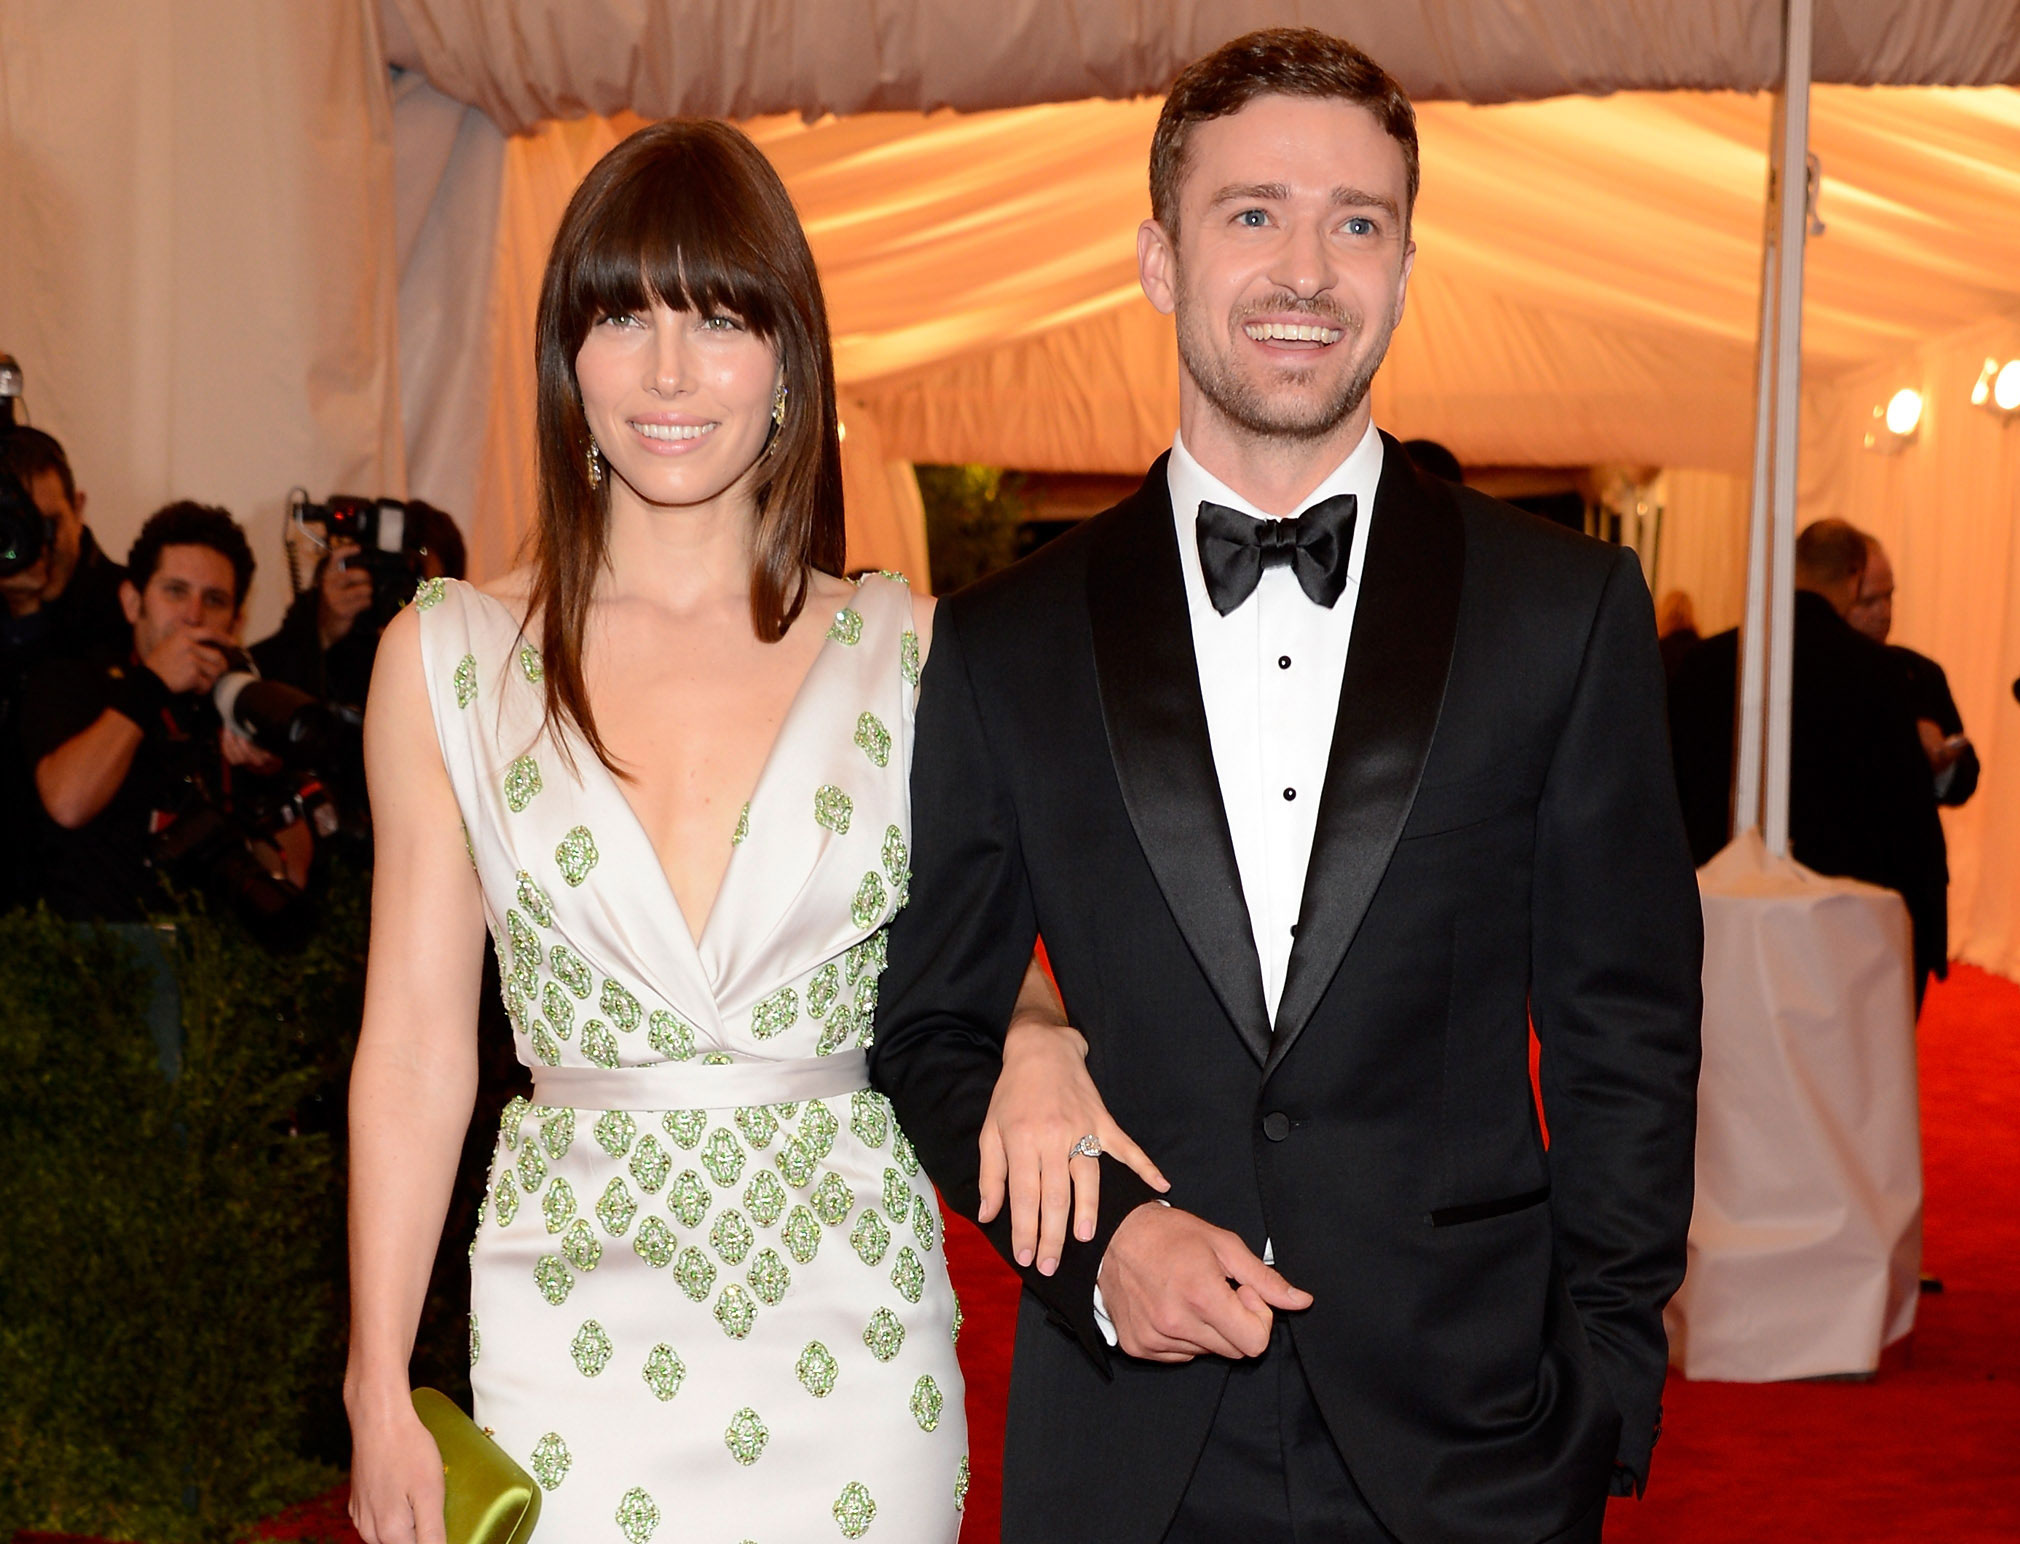 Justin Timberlake Wedding.Justin Timberlake Wedding To Jessica Biel Was Unforgettable